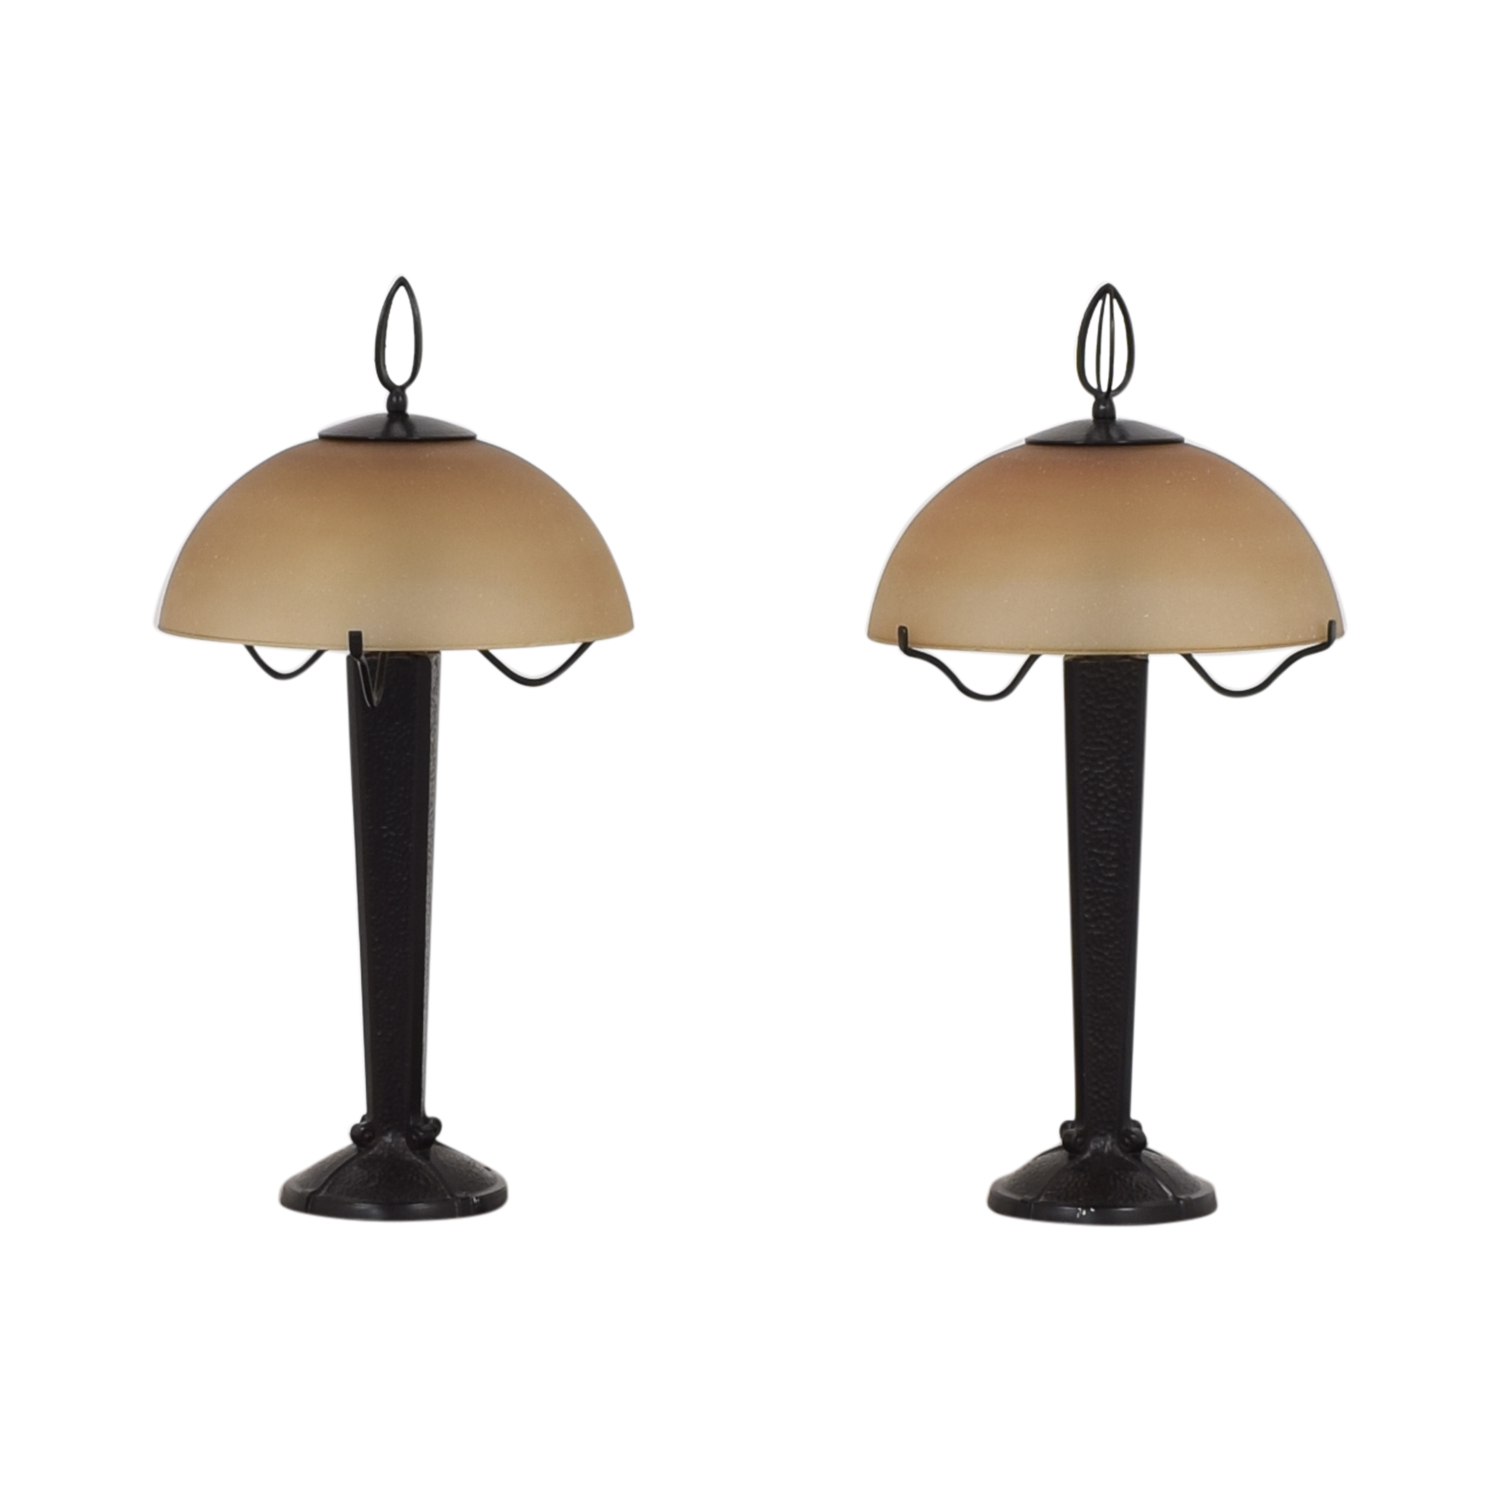 Restoration Hardware Restoration Hardware Craftsman Style Table Lamps for sale